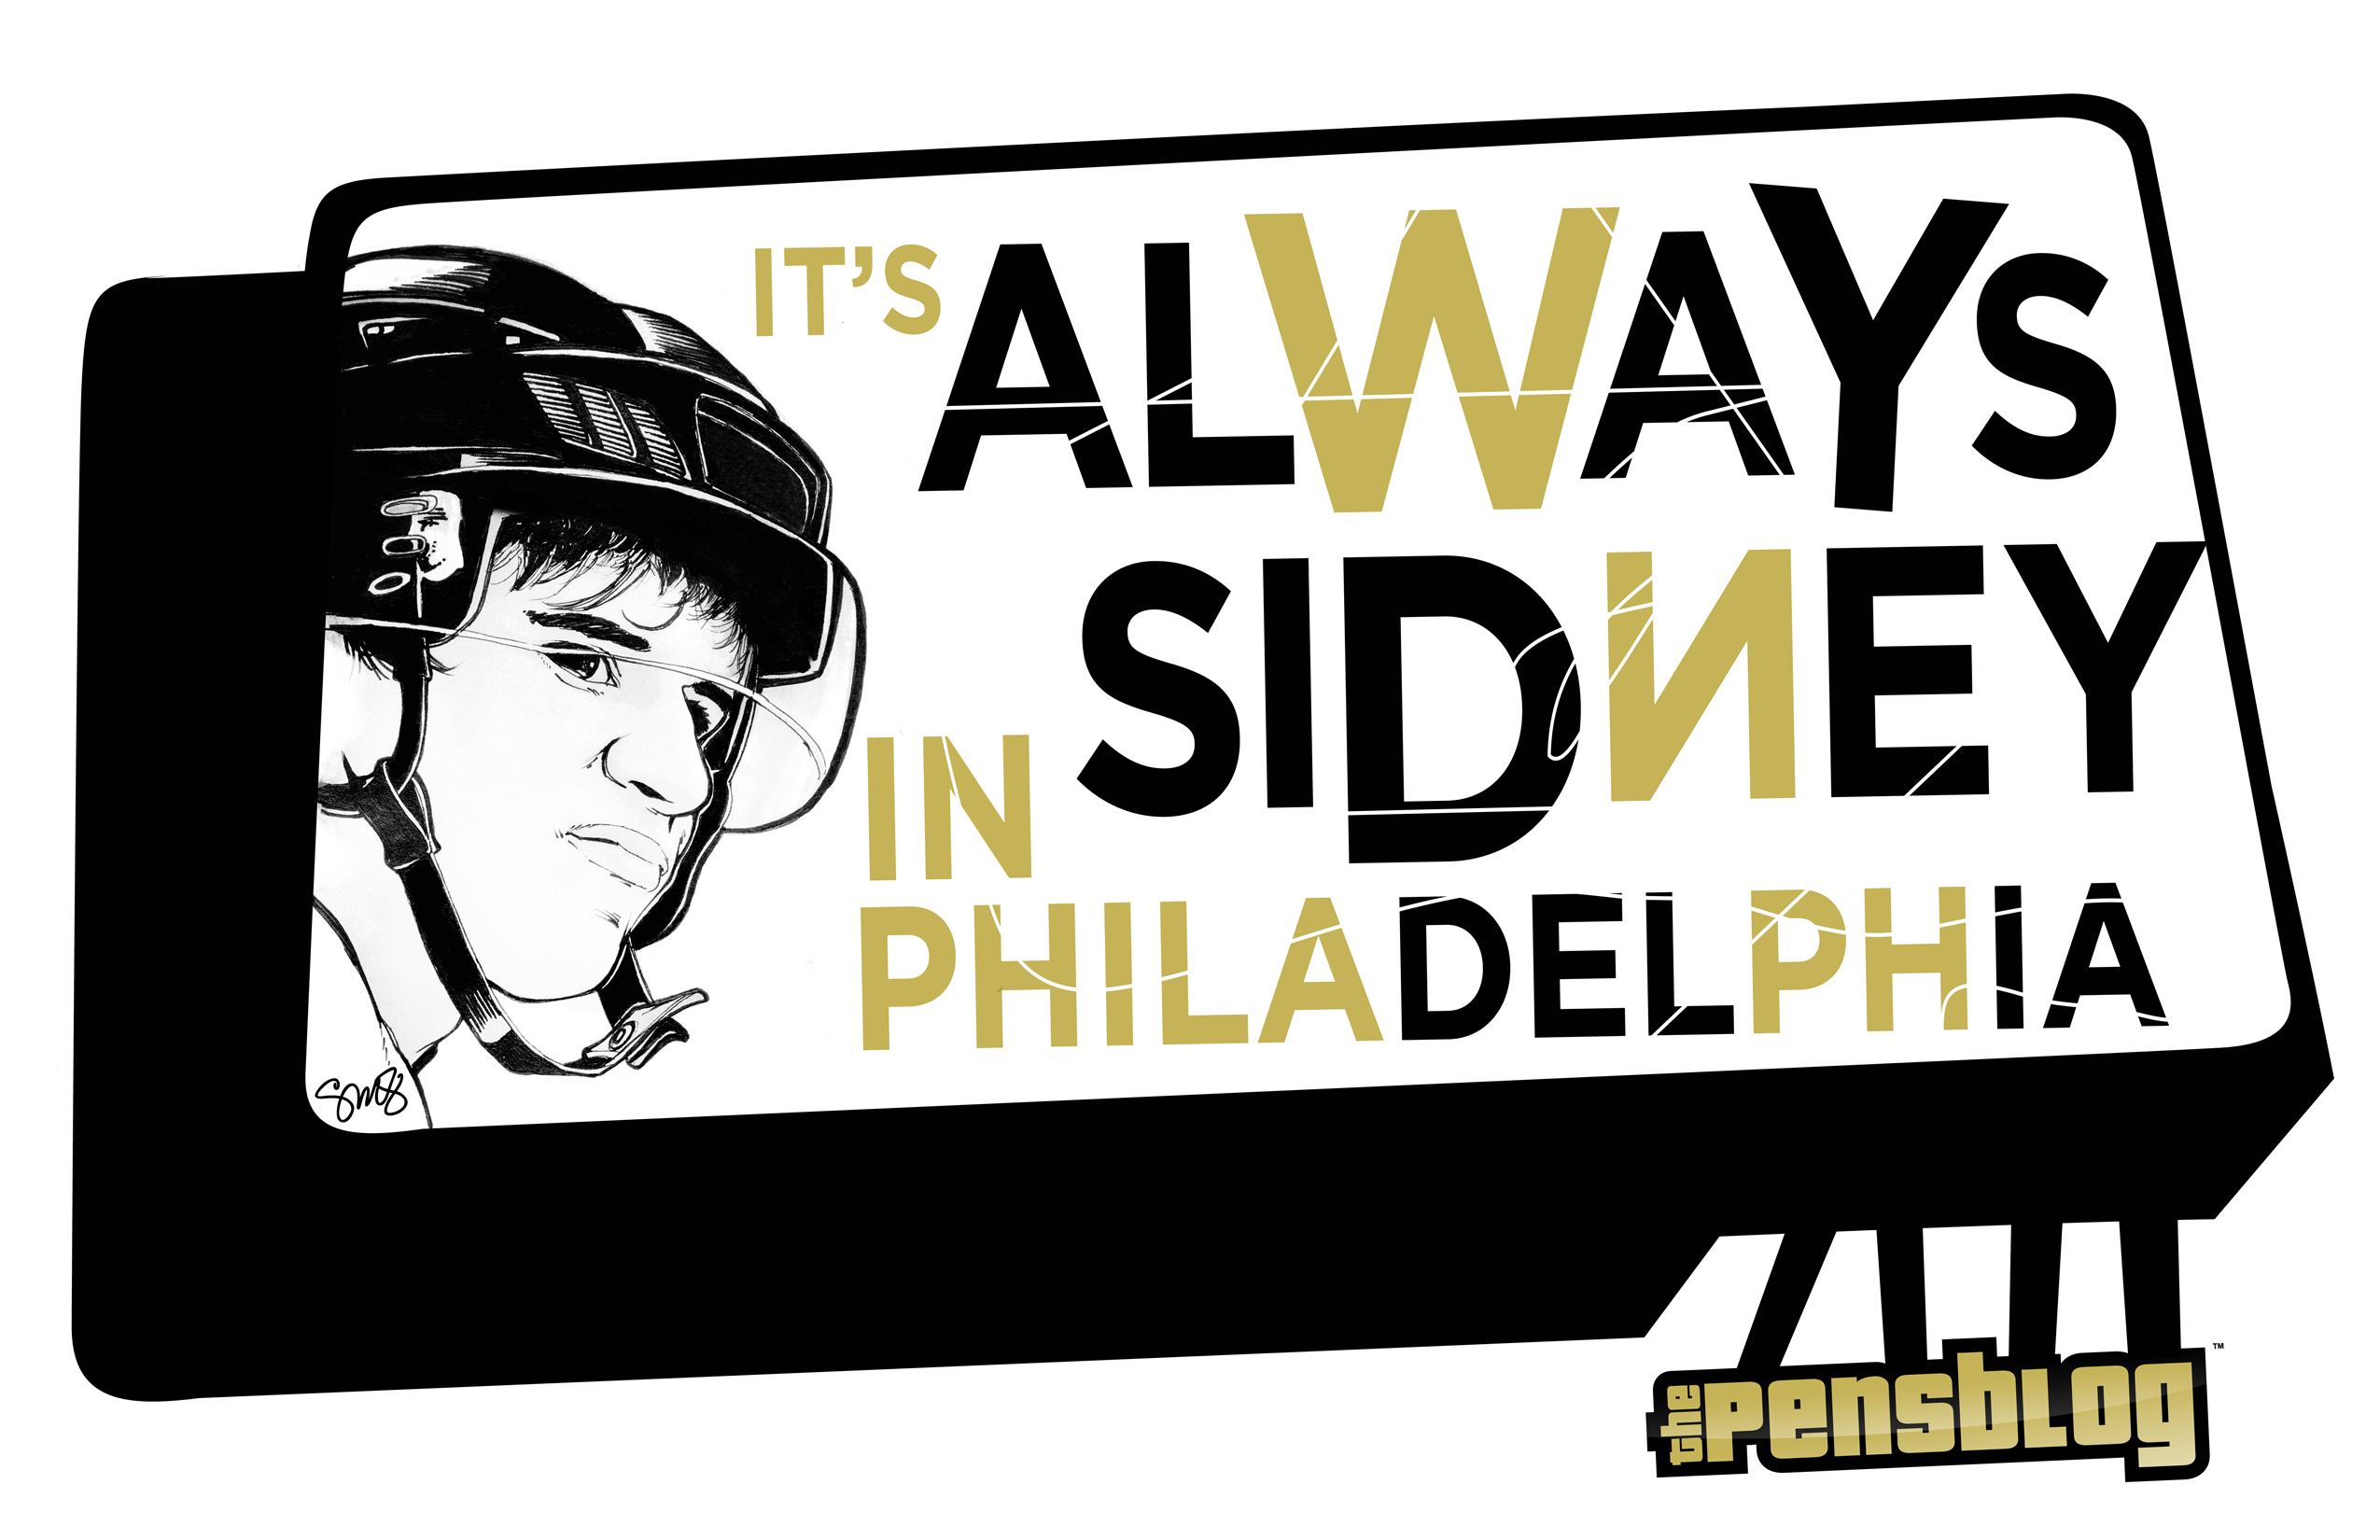 http://www.thepensblog.com/http://bloguin.com/thepensblog/wp-content/uploads/sites/26/2010/12/AlwaysSidneySign.jpg